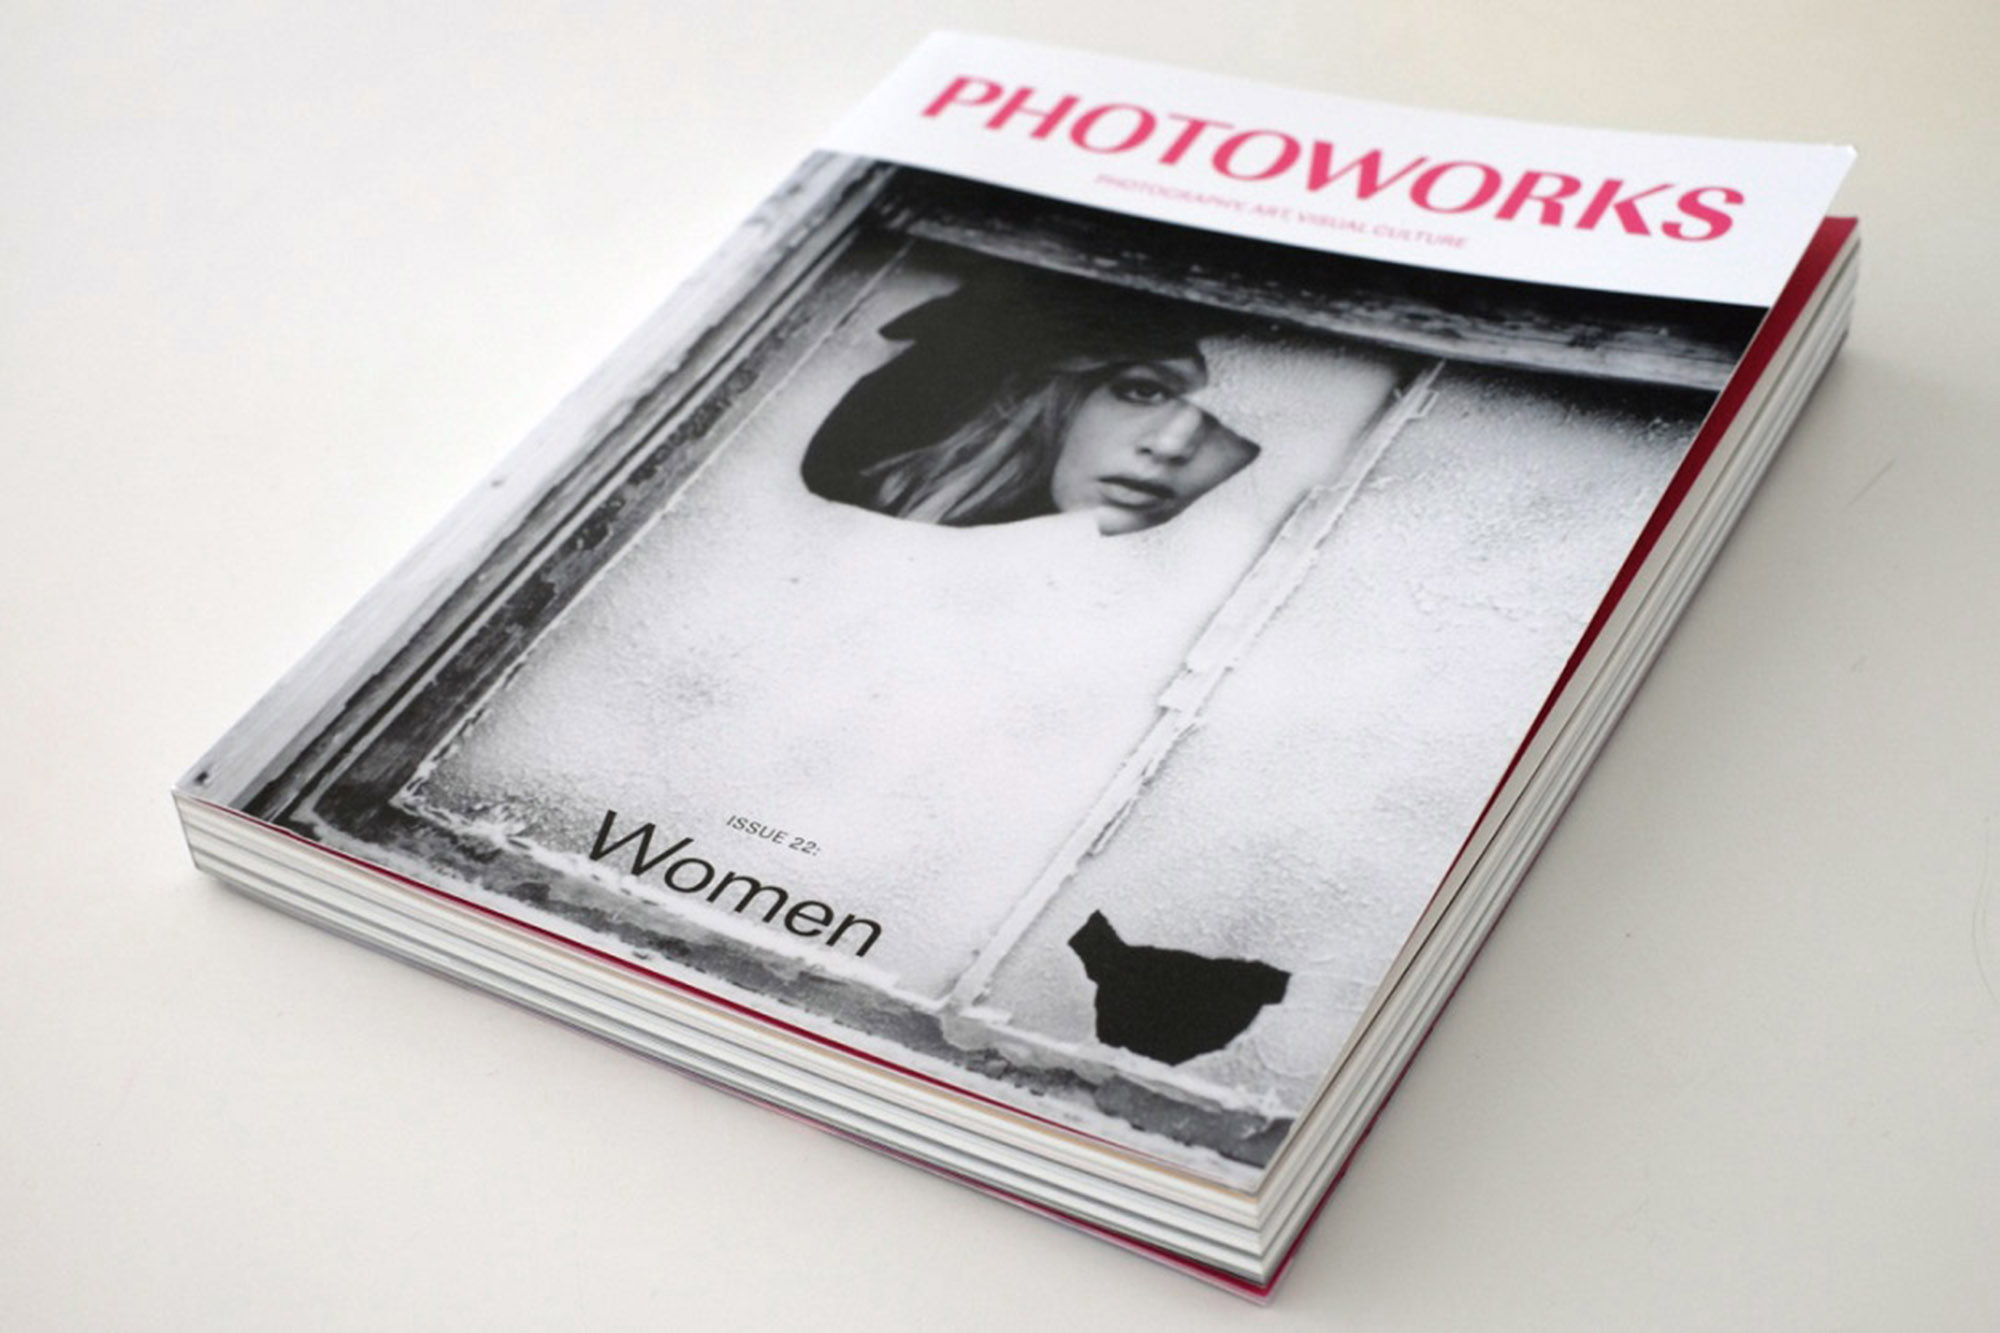 M._Photoworks Annual Issue 22_publication01.jpg